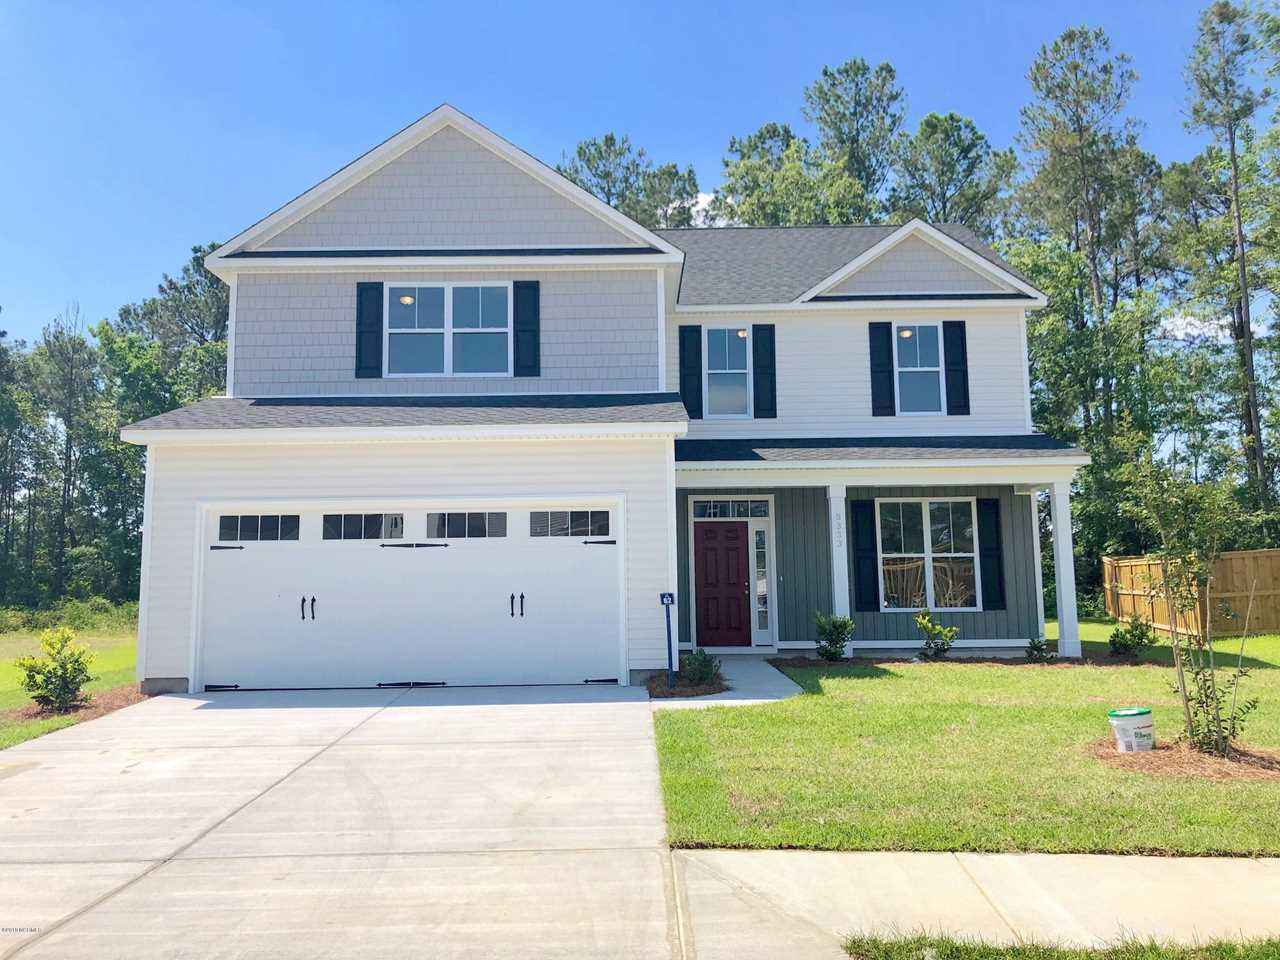 Home For Sale At 9333 Cassadine Court, Leland NC in Windermere Estates Photo 1